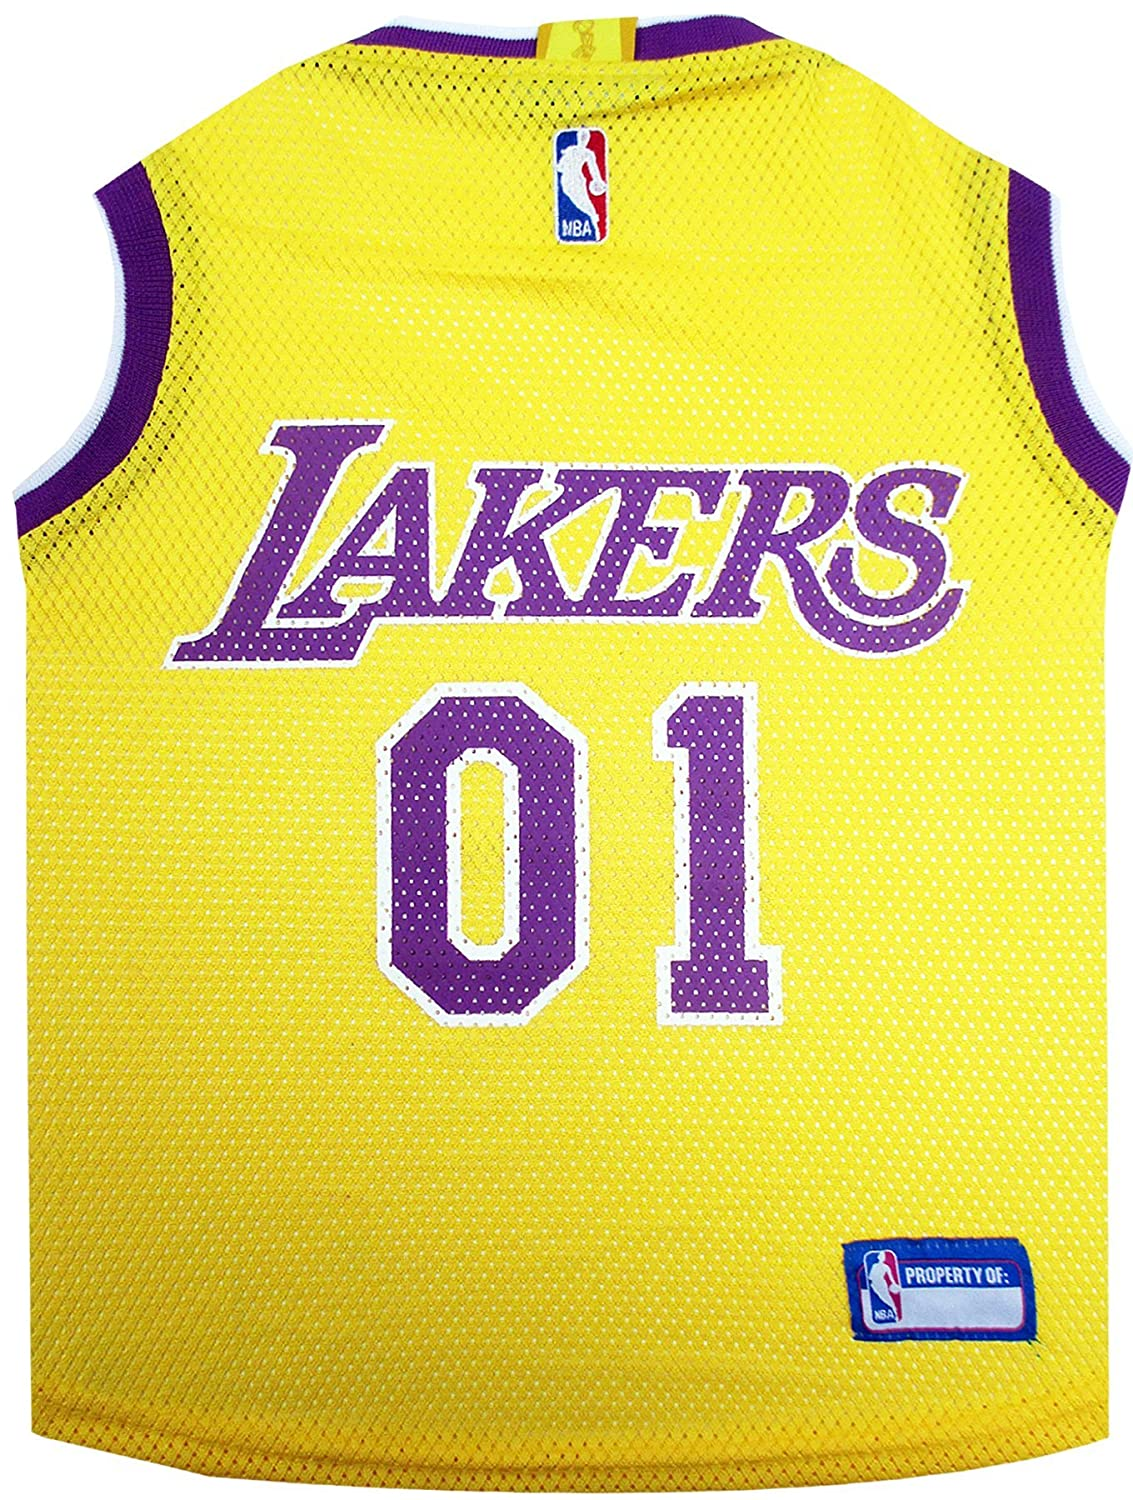 a239f932e8b23e NBA PET Apparel. - Licensed Jerseys for Dogs   Cats Available in 25  Basketball Teams   5 Sizes Cute pet Clothing for All Sports Fans. Best NBA  Dog Gear